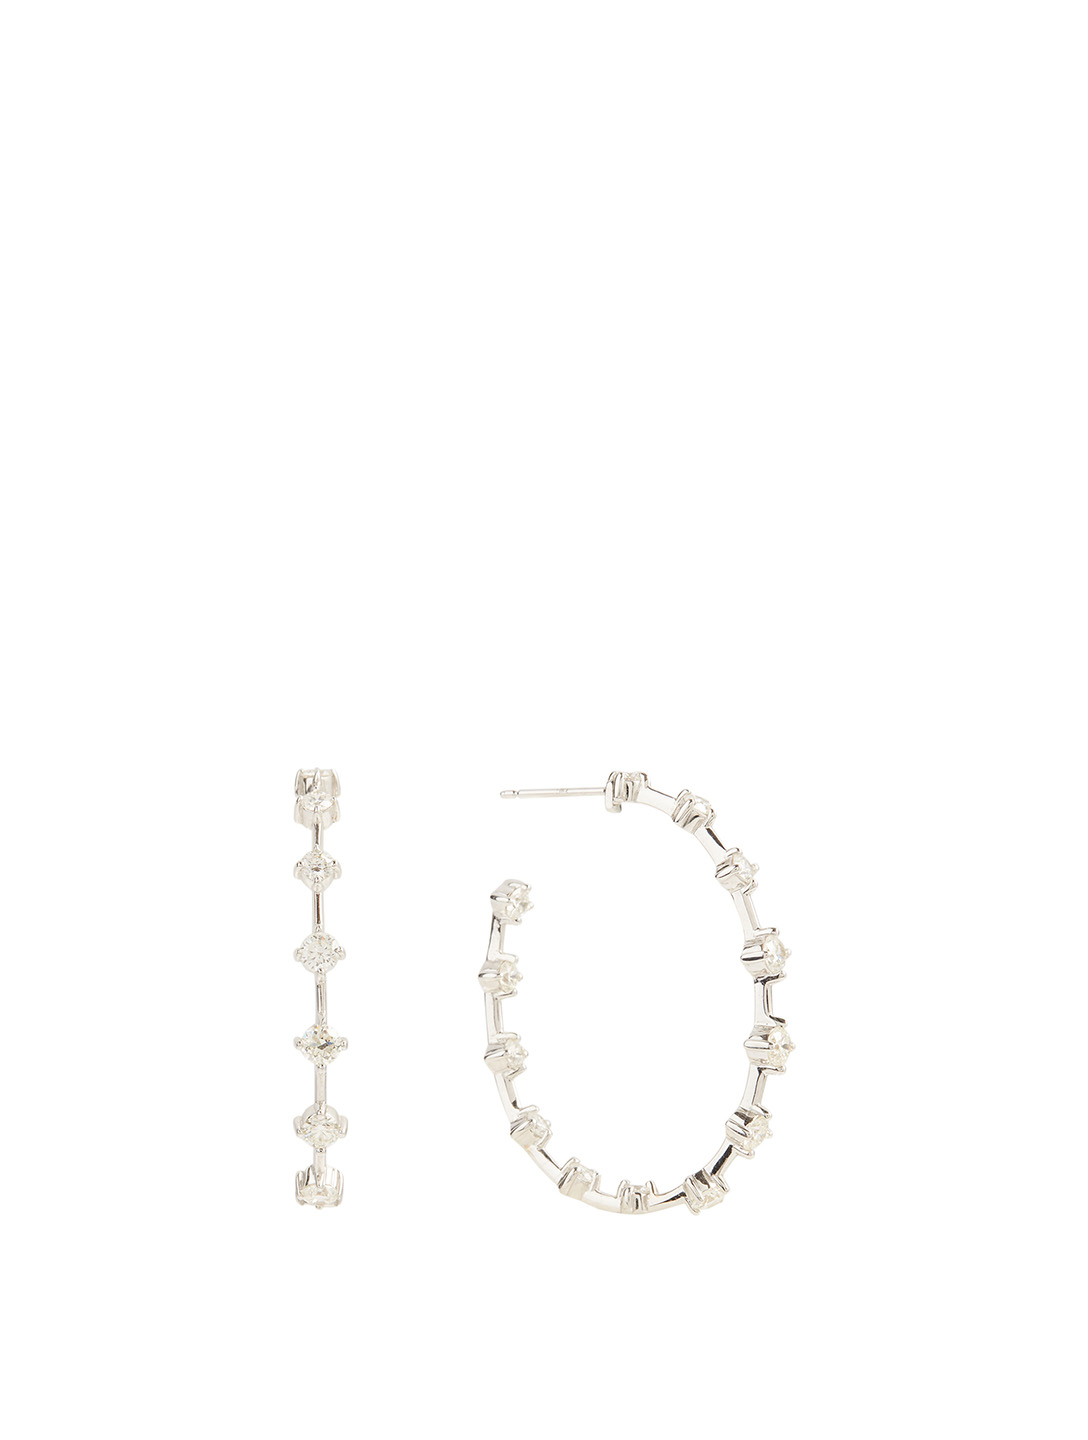 MARIA CANALE Essentials 18K White Gold Wire Hoop Earrings With Diamonds Women's Metallic